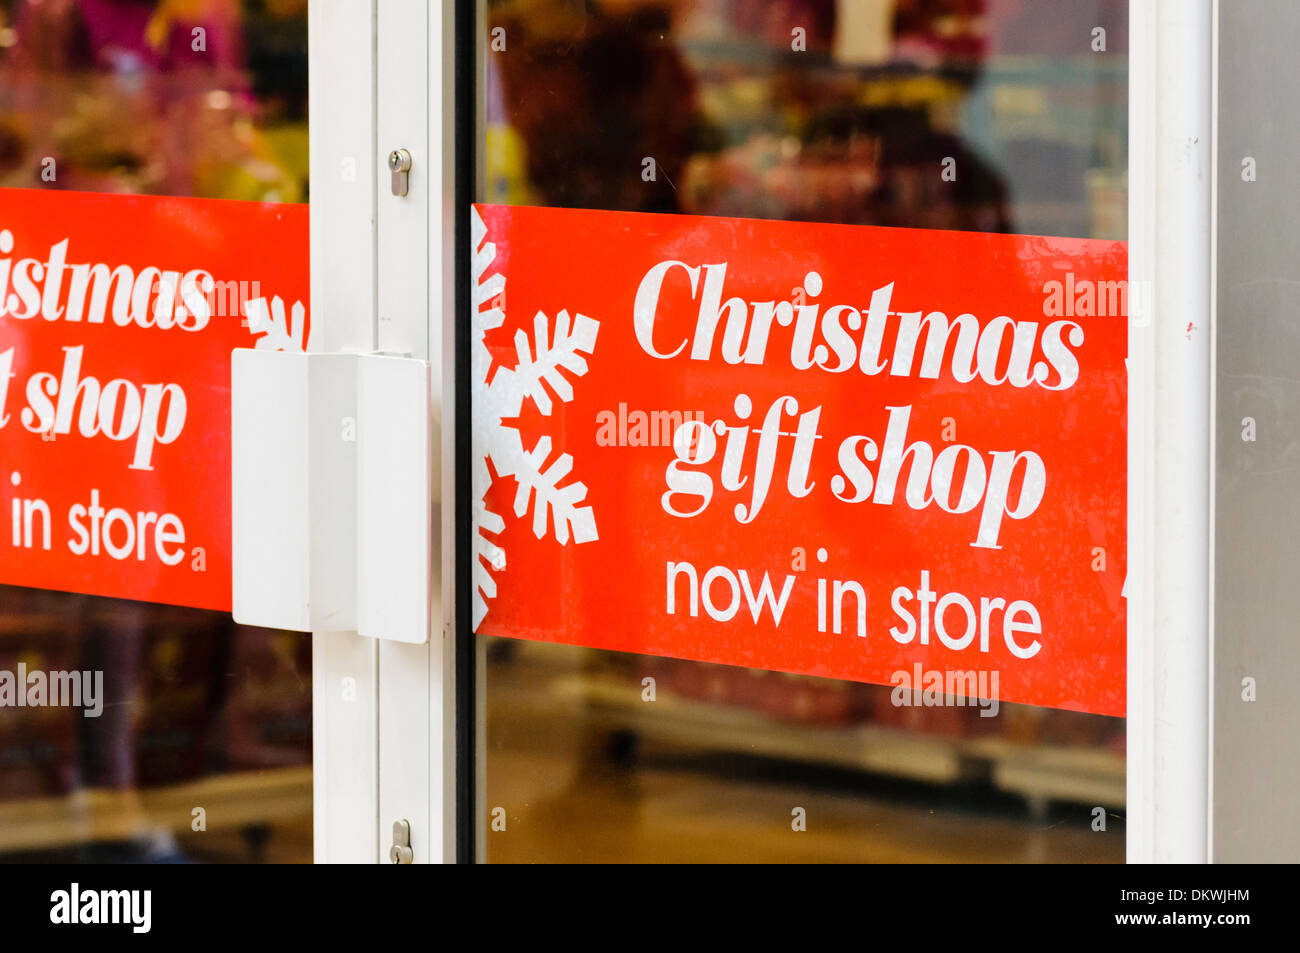 Christmas Gift Shop now in store sign Stock Photo: 63872976 - Alamy